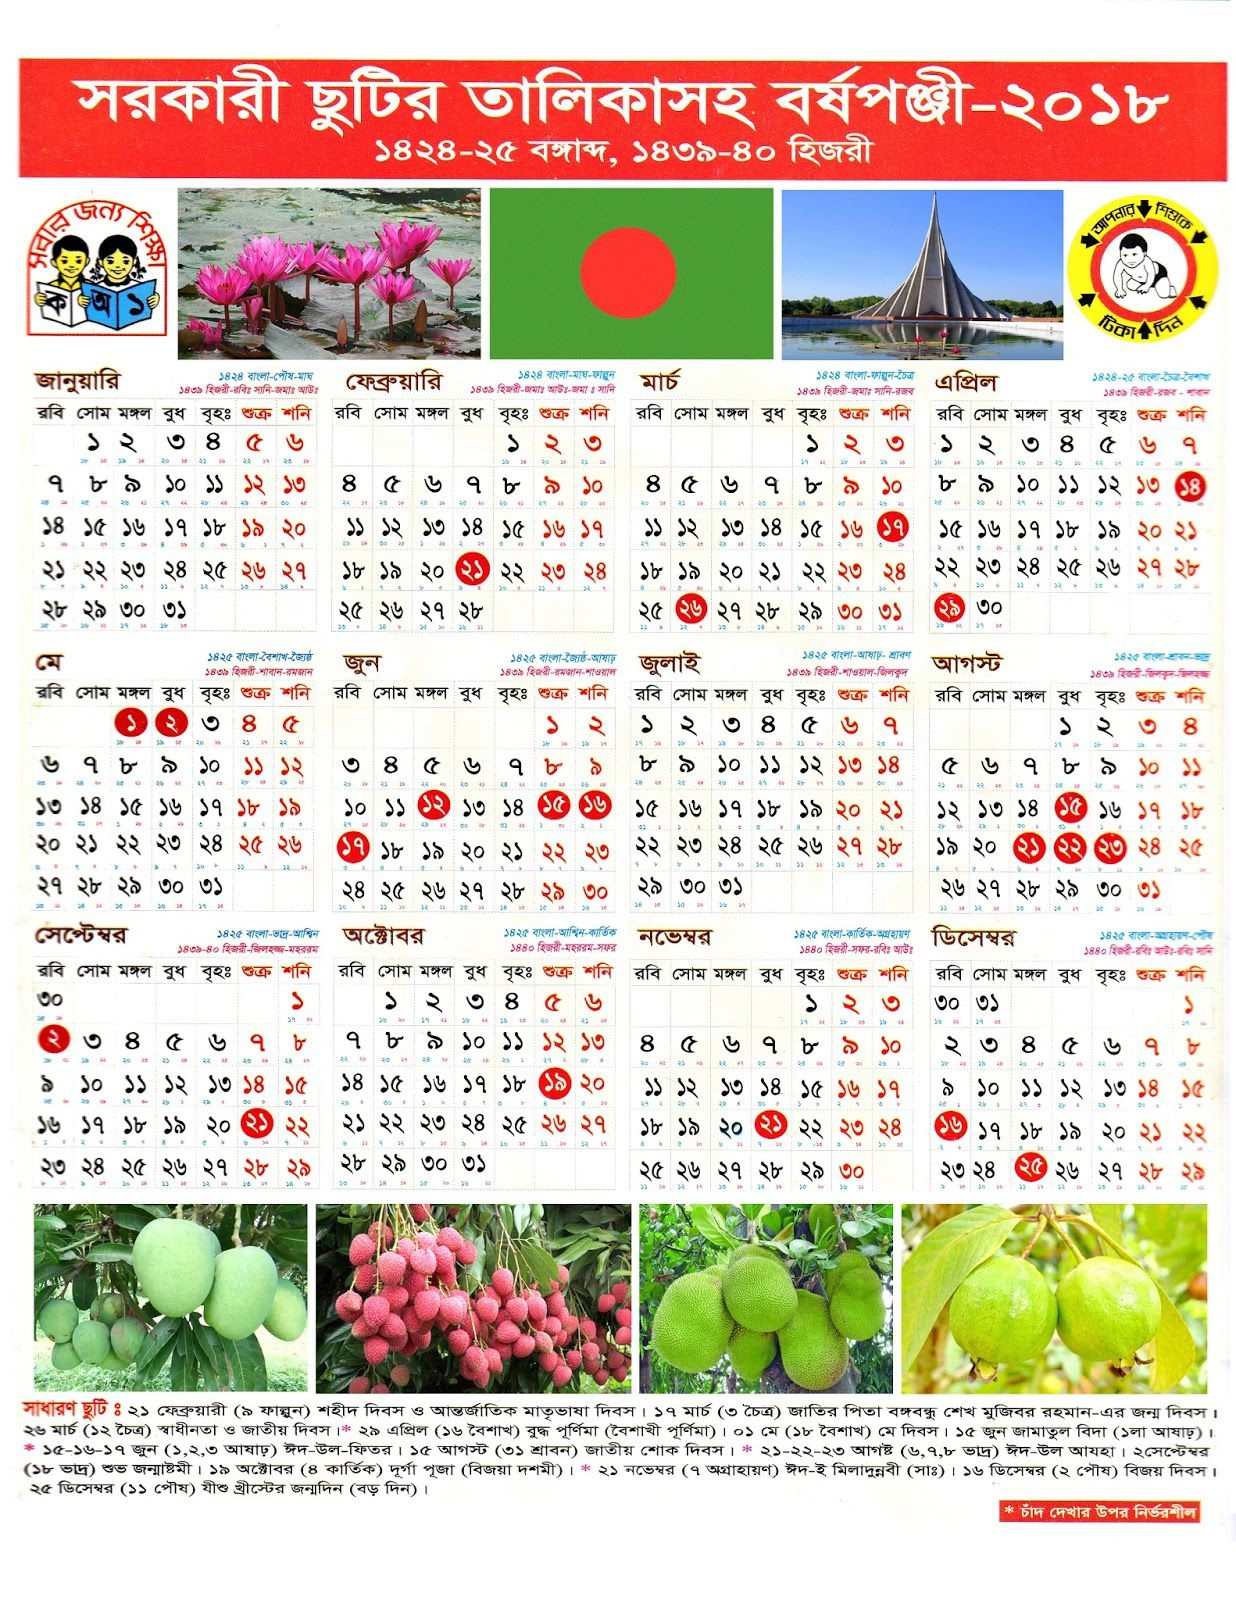 bangladesh government official calendar 2018 government holiday Government Calendar With Holidays 2018 erdferdf